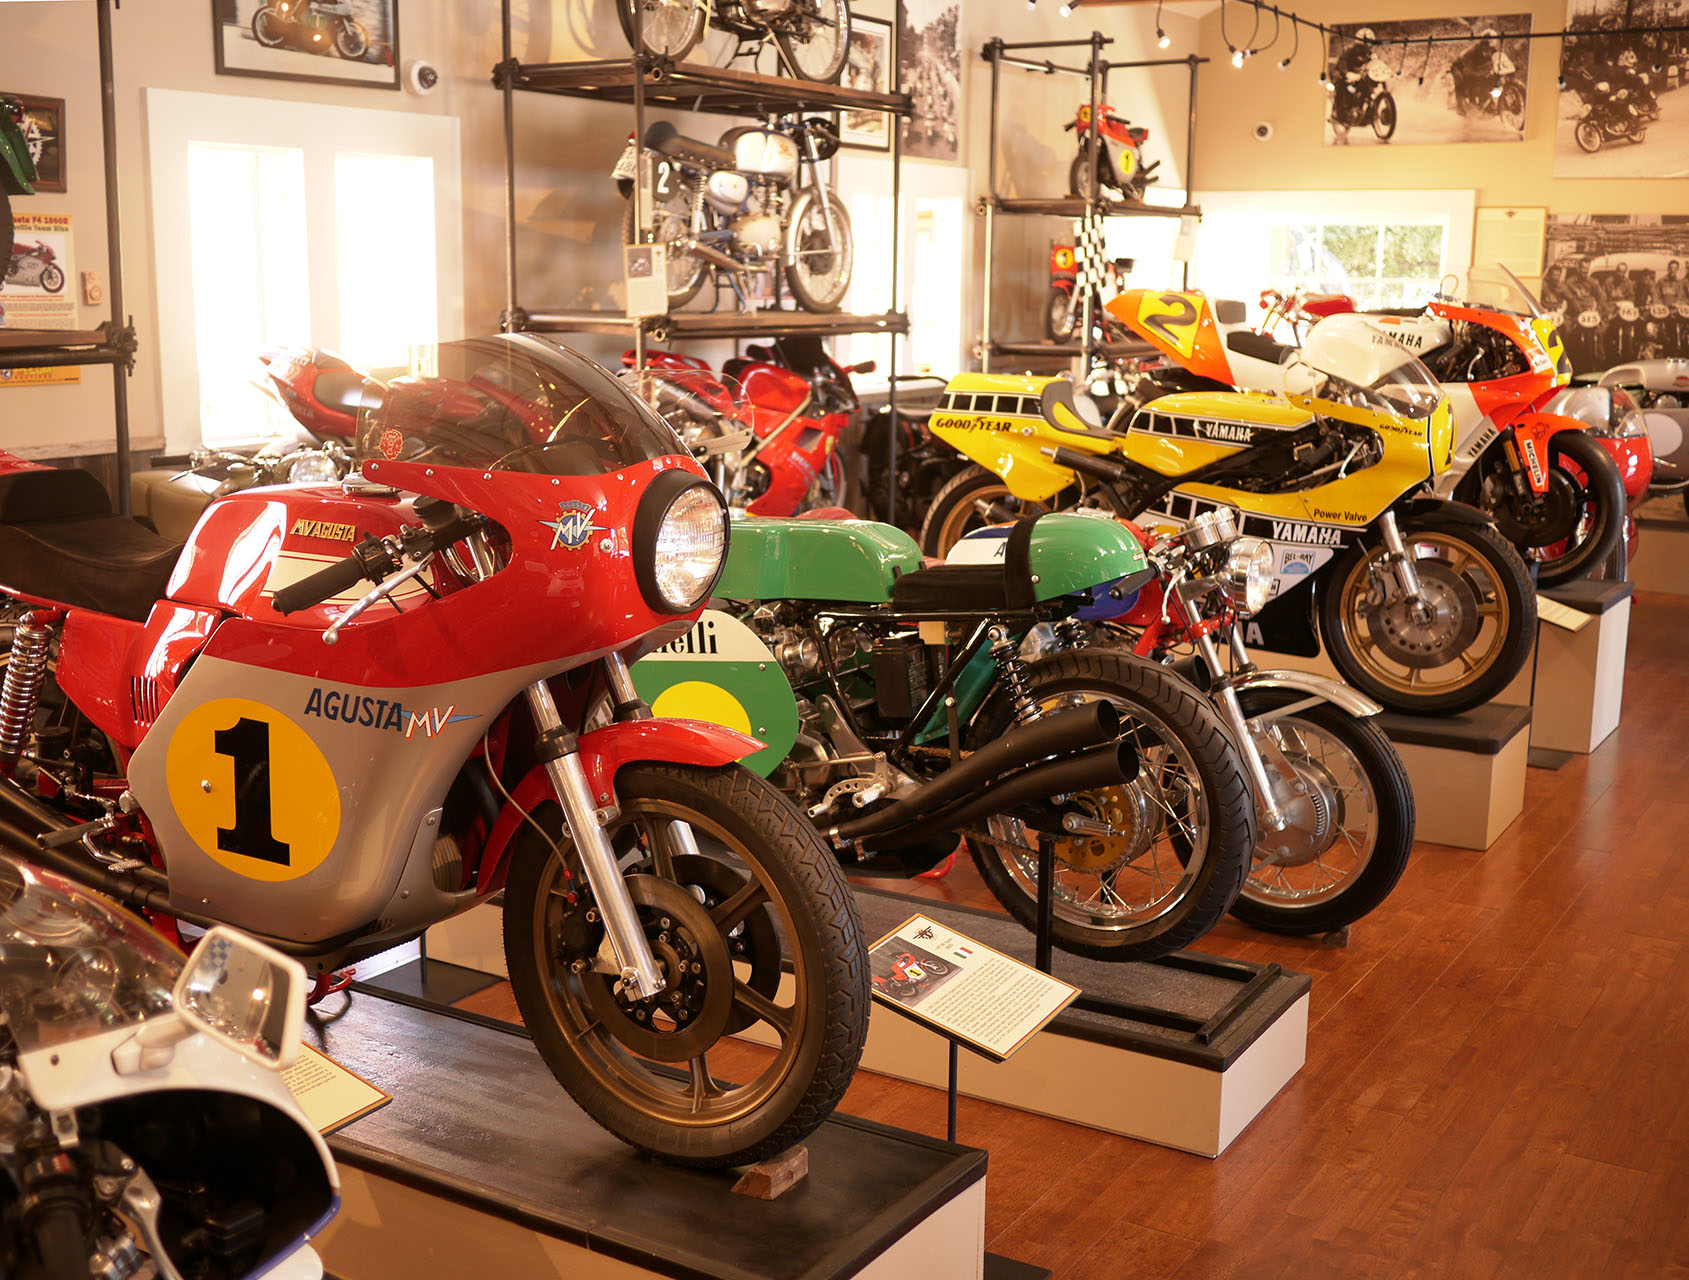 A sea of dreams including two world championship winning machines